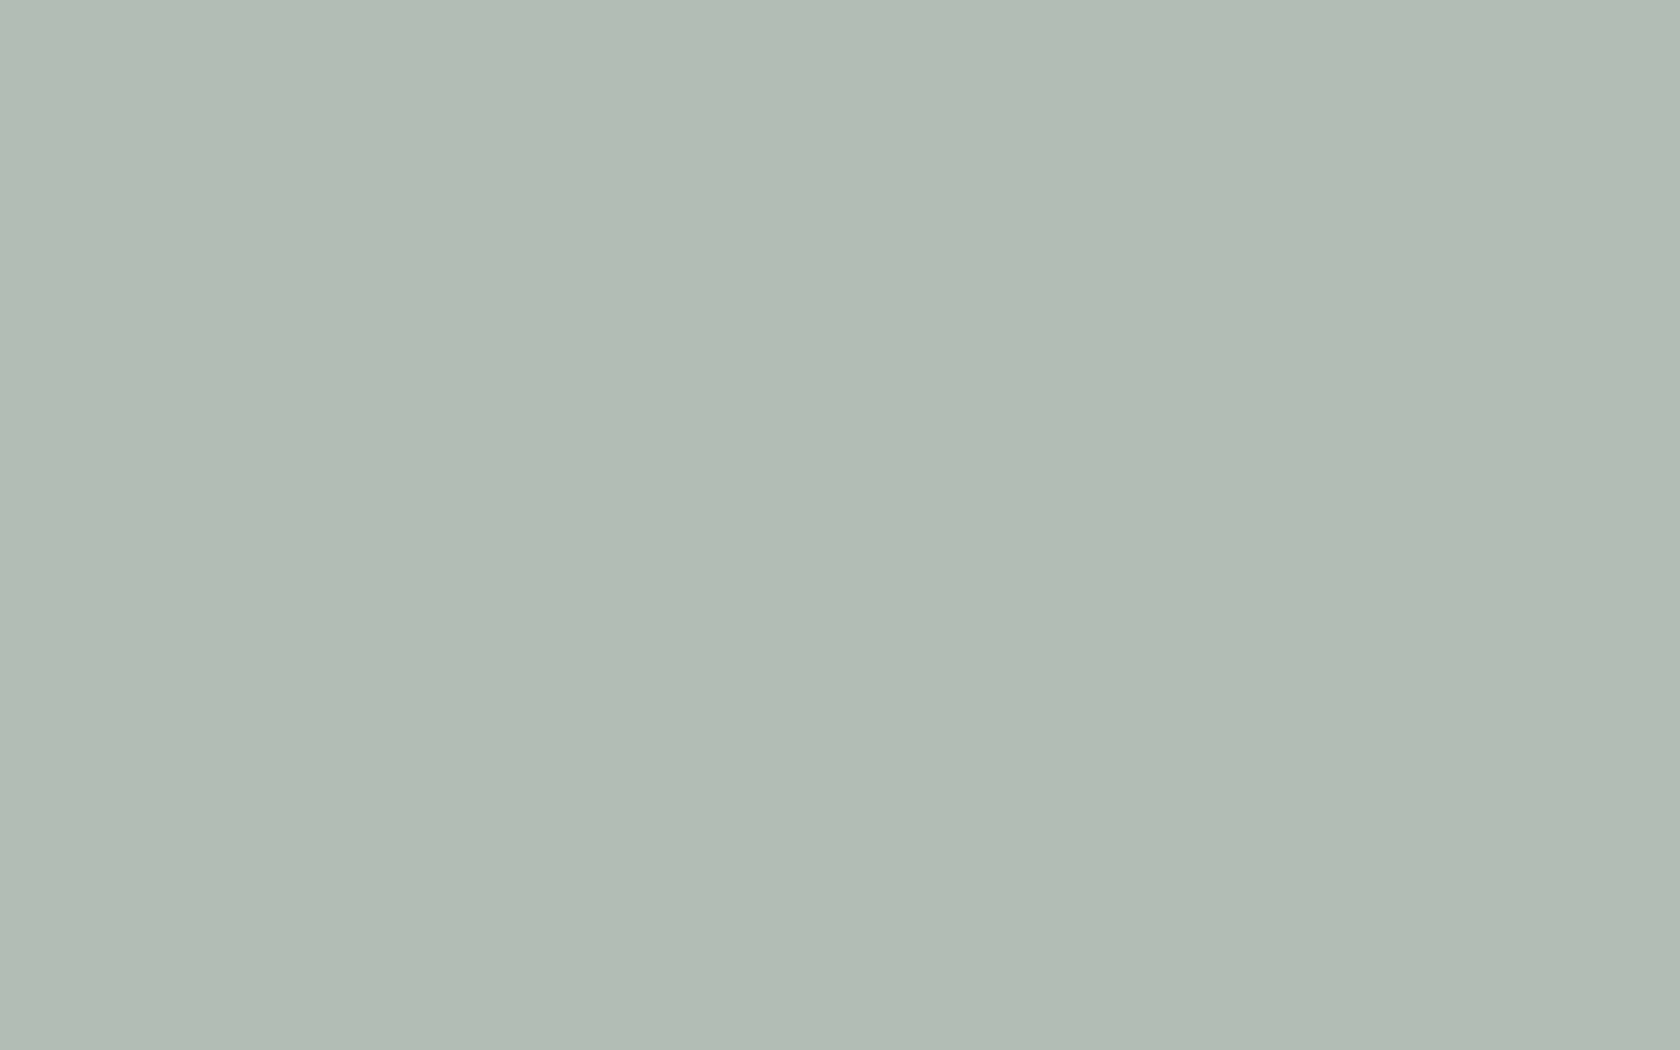 1680x1050 Ash Grey Solid Color Background